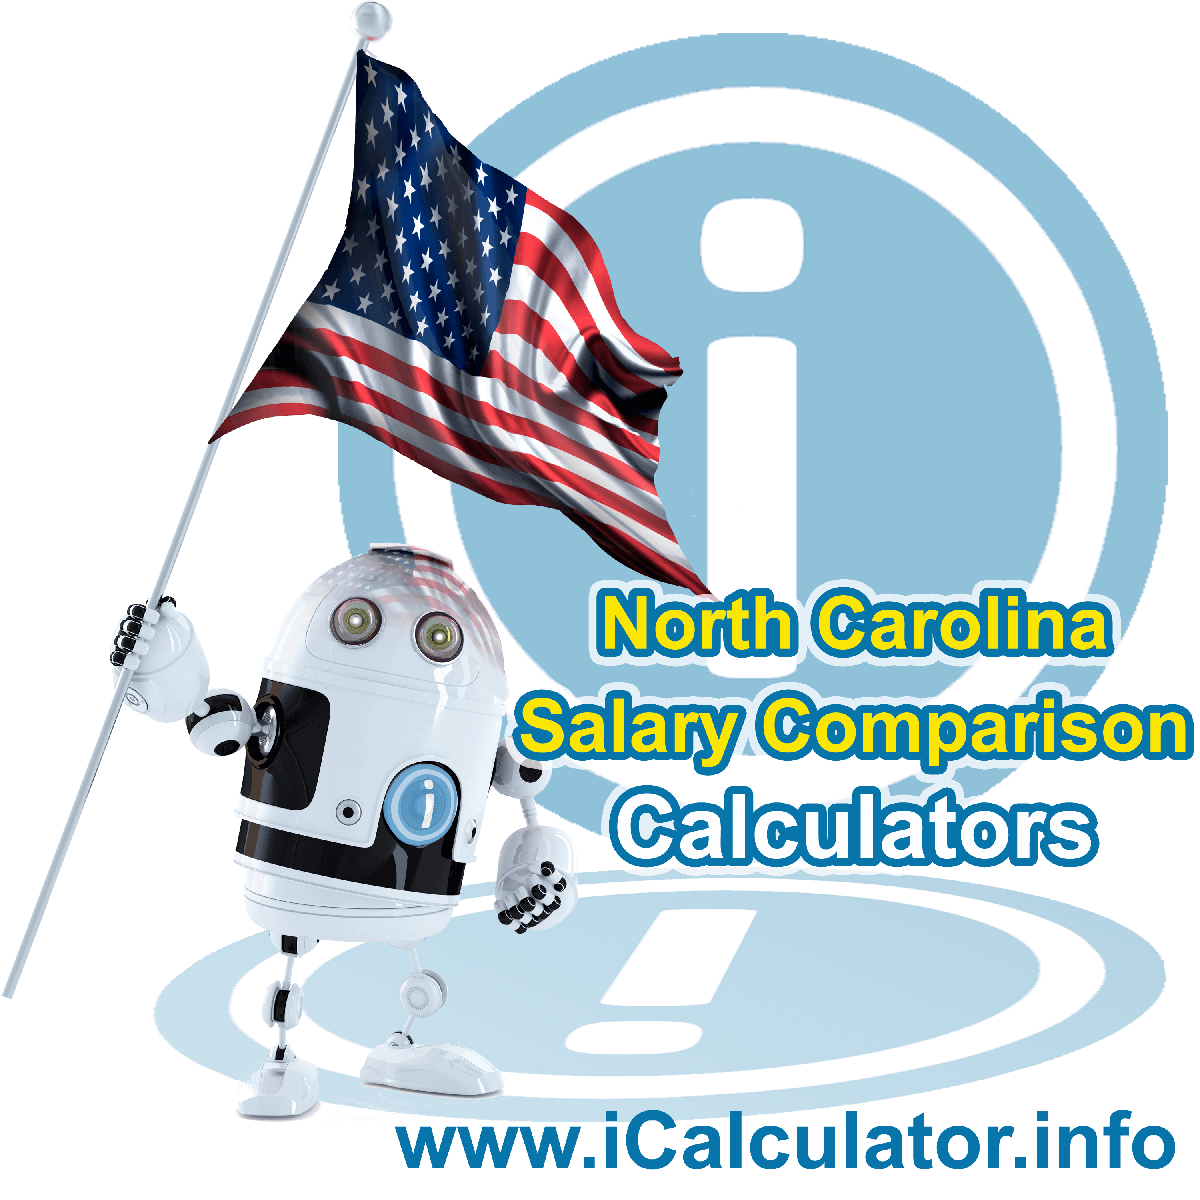 North Carolina Salary Comparison Calculator 2019 | iCalculator | The North Carolina Salary Comparison Calculator allows you to quickly calculate and compare upto 6 salaries in North Carolina or between other states for the 2019 tax year and historical tax years. Its an excellent tool for jobseekers, pay raise comparison and comparison of salaries between different US States